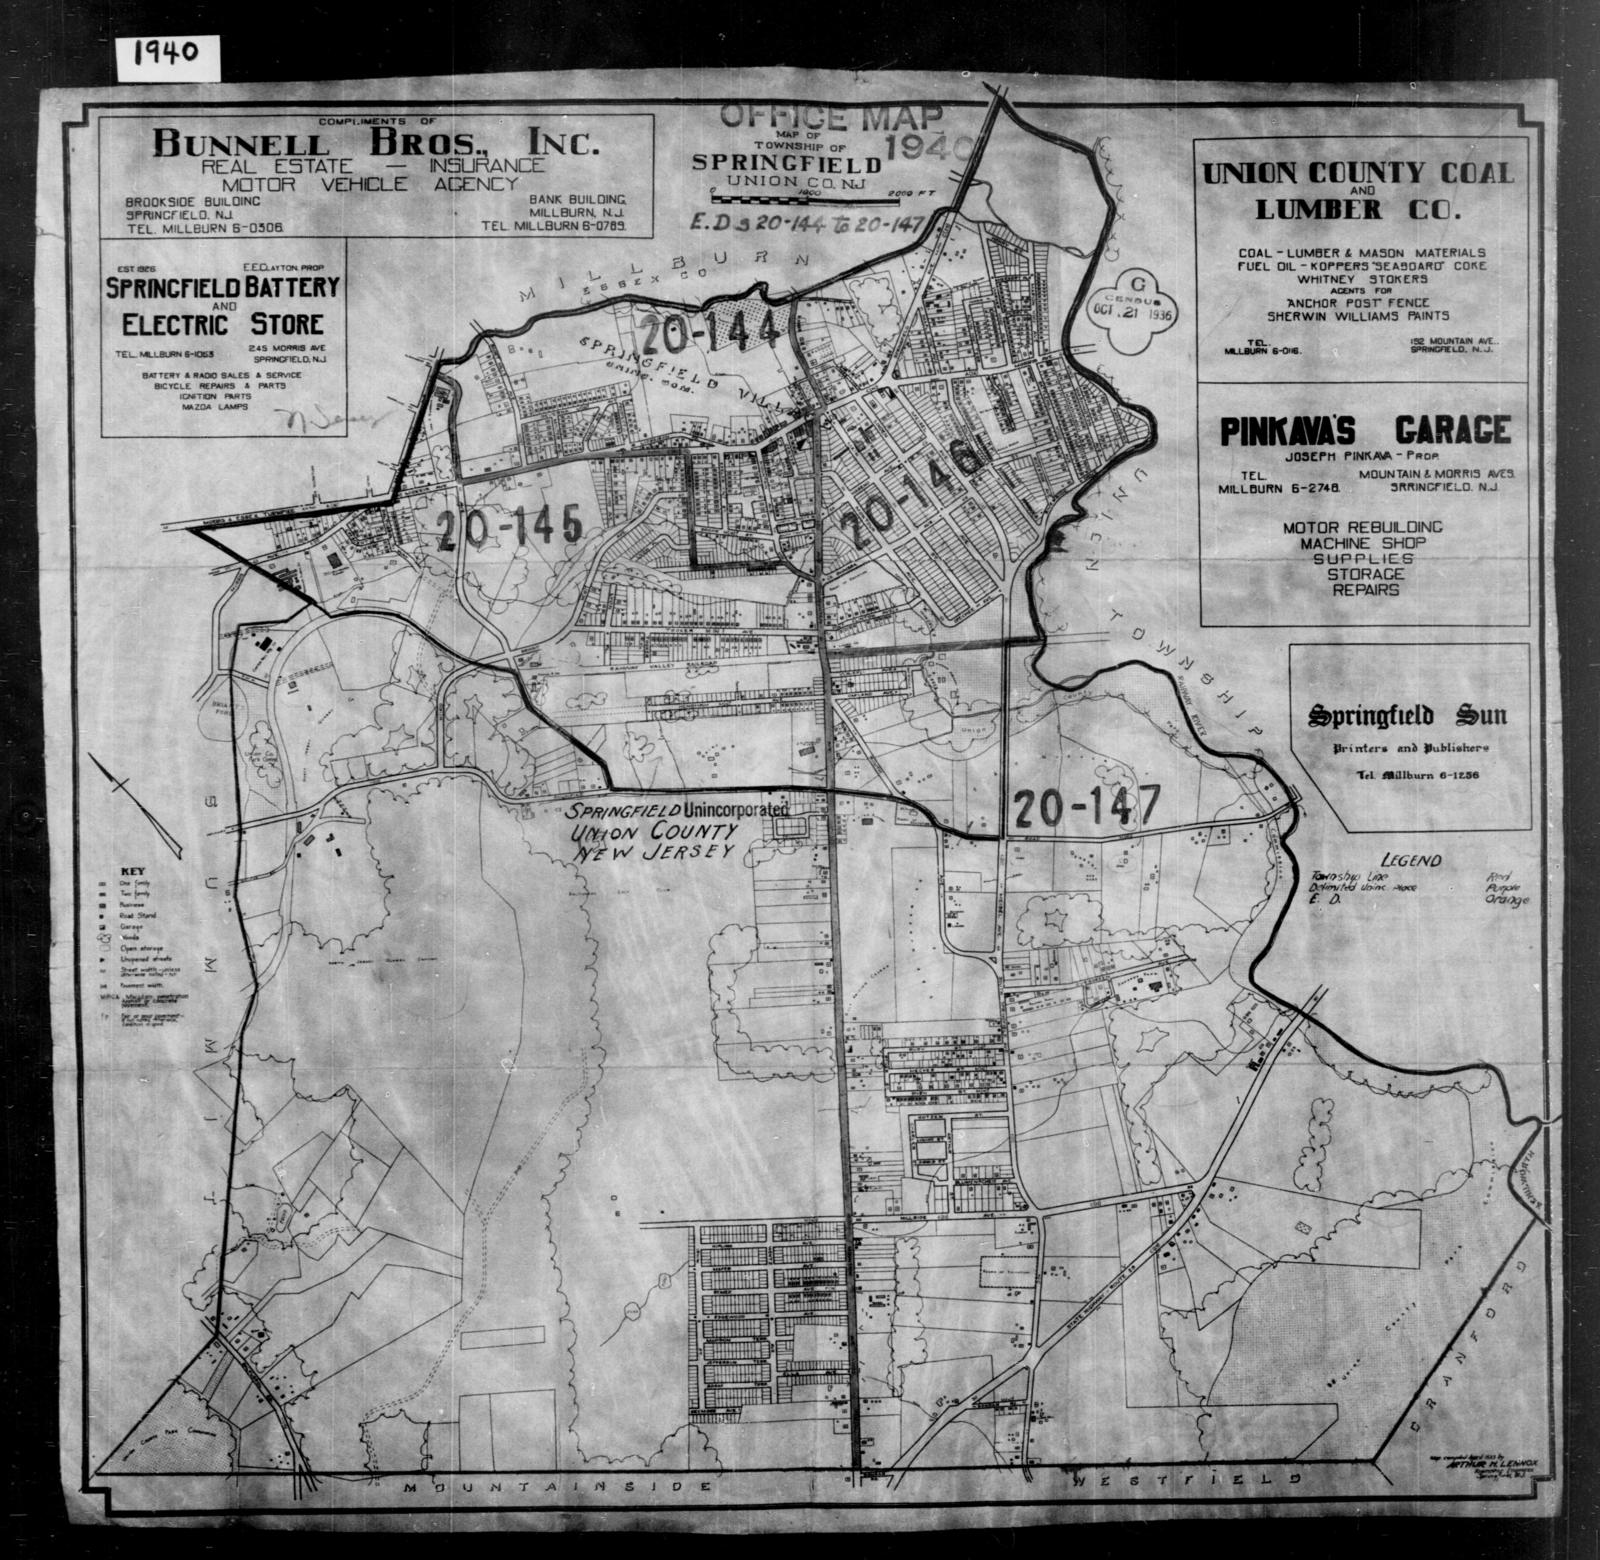 1940 Census Enumeration District Maps - New Jersey - Union County - Springfield - ED 20-144, ED 20-145, ED 20-146, ED 20-147